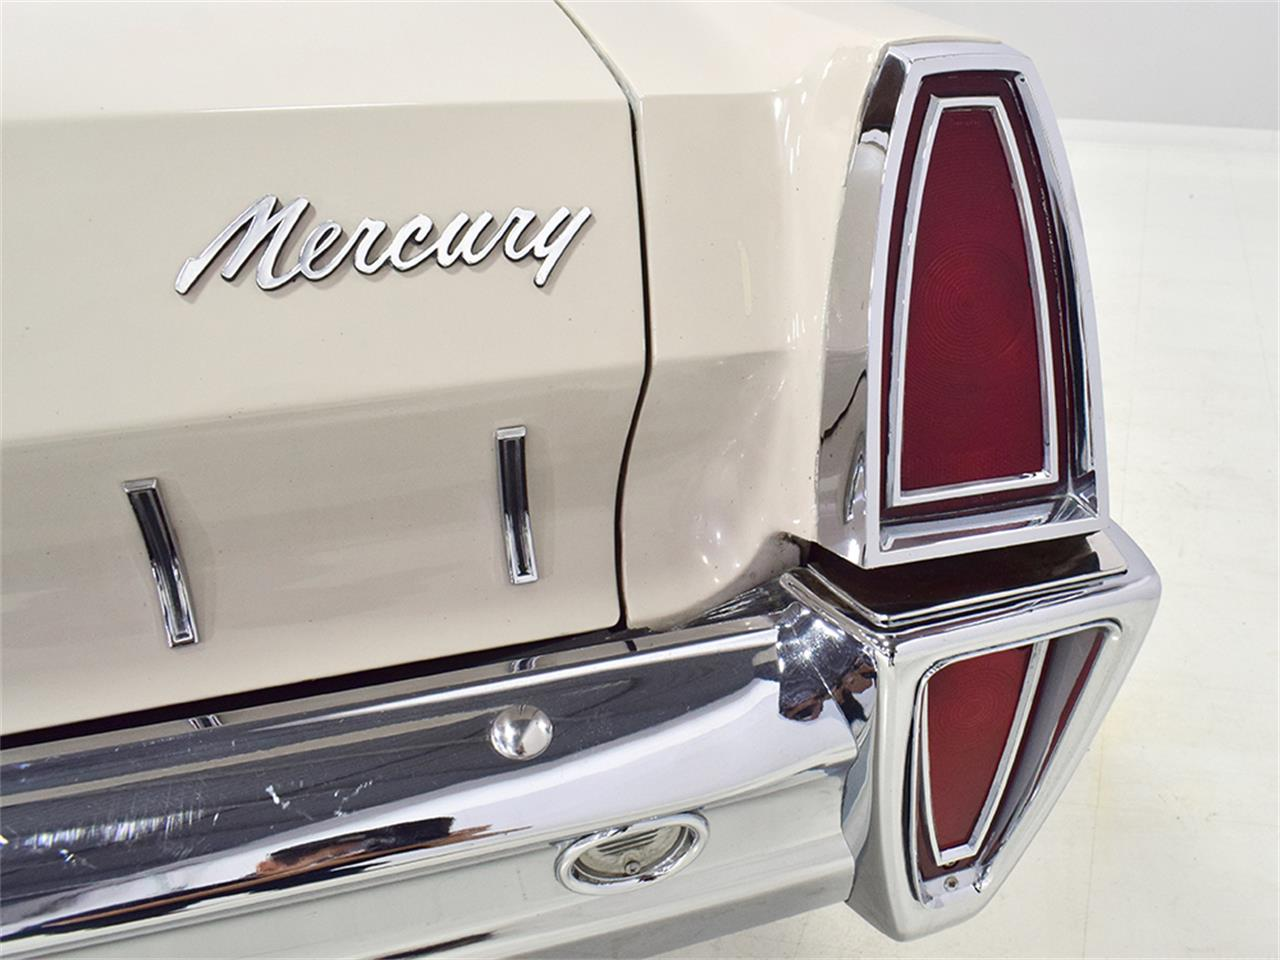 1965 Mercury Montclair for sale in Macedonia, OH – photo 34